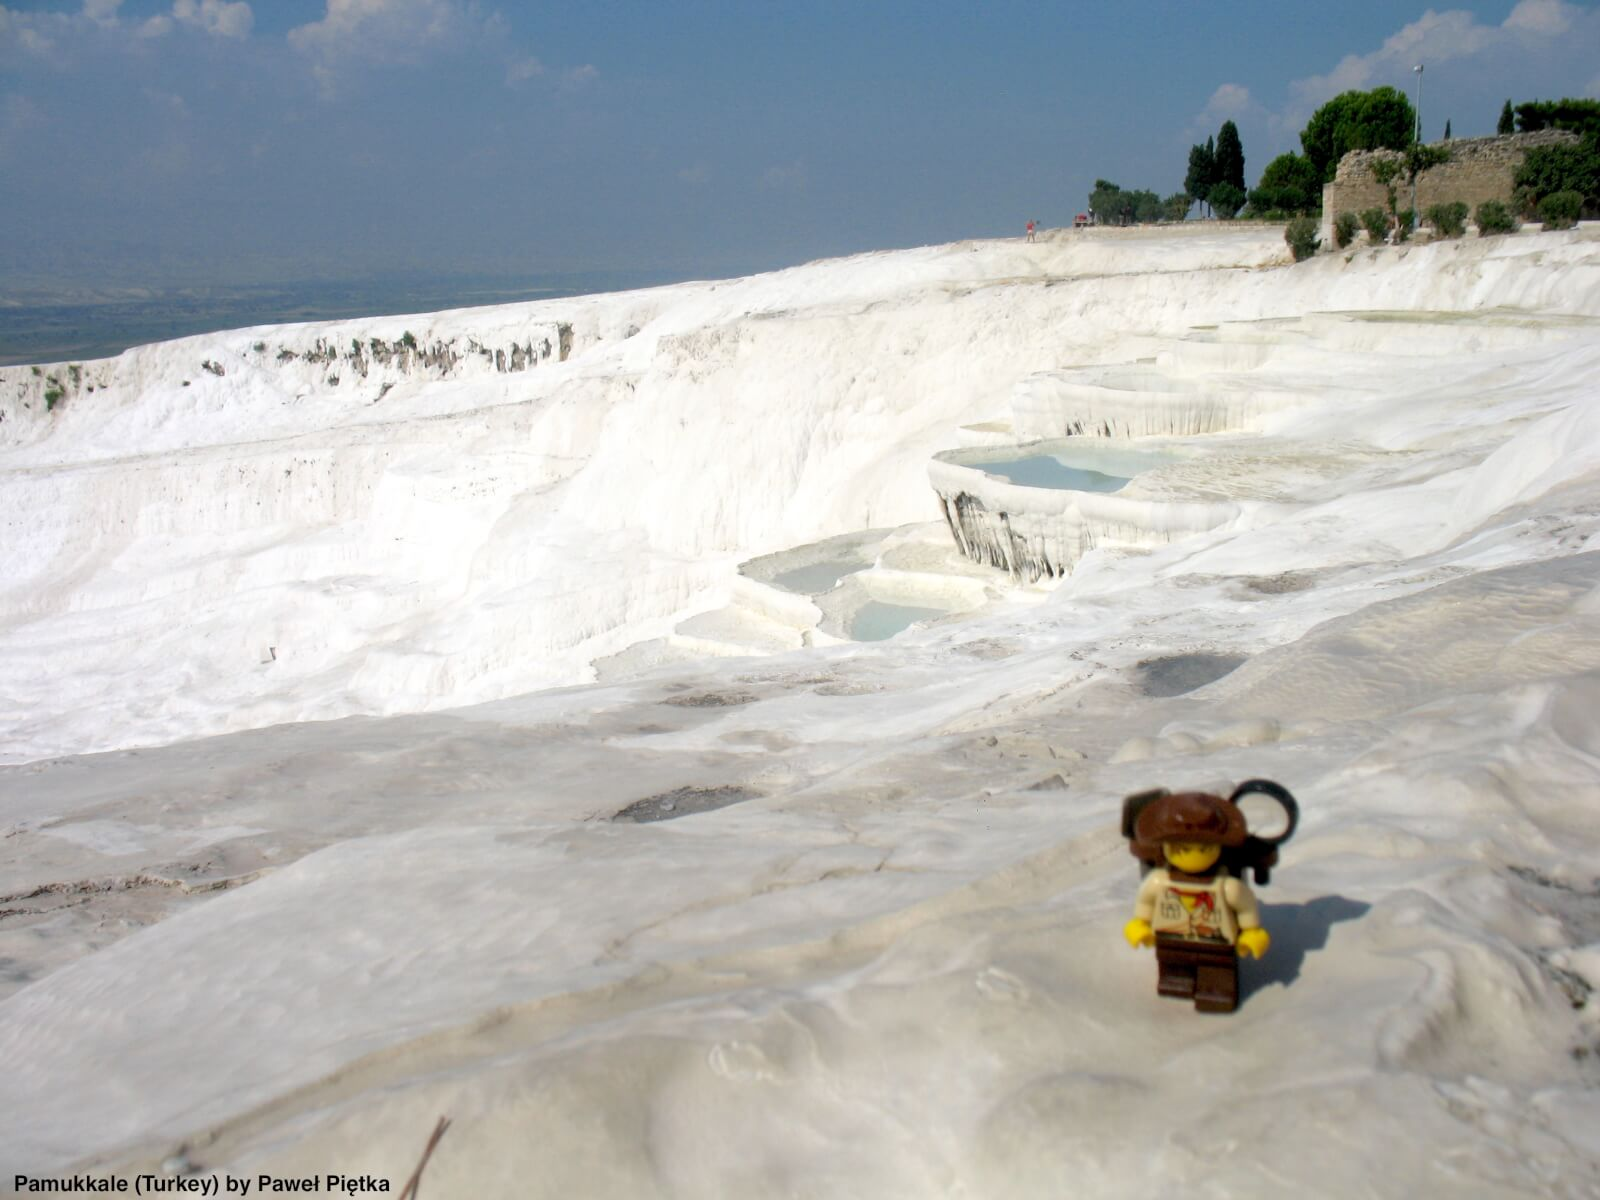 Pamukkale (Turkey) - Terraces of carbonate minerals left by the flowing water